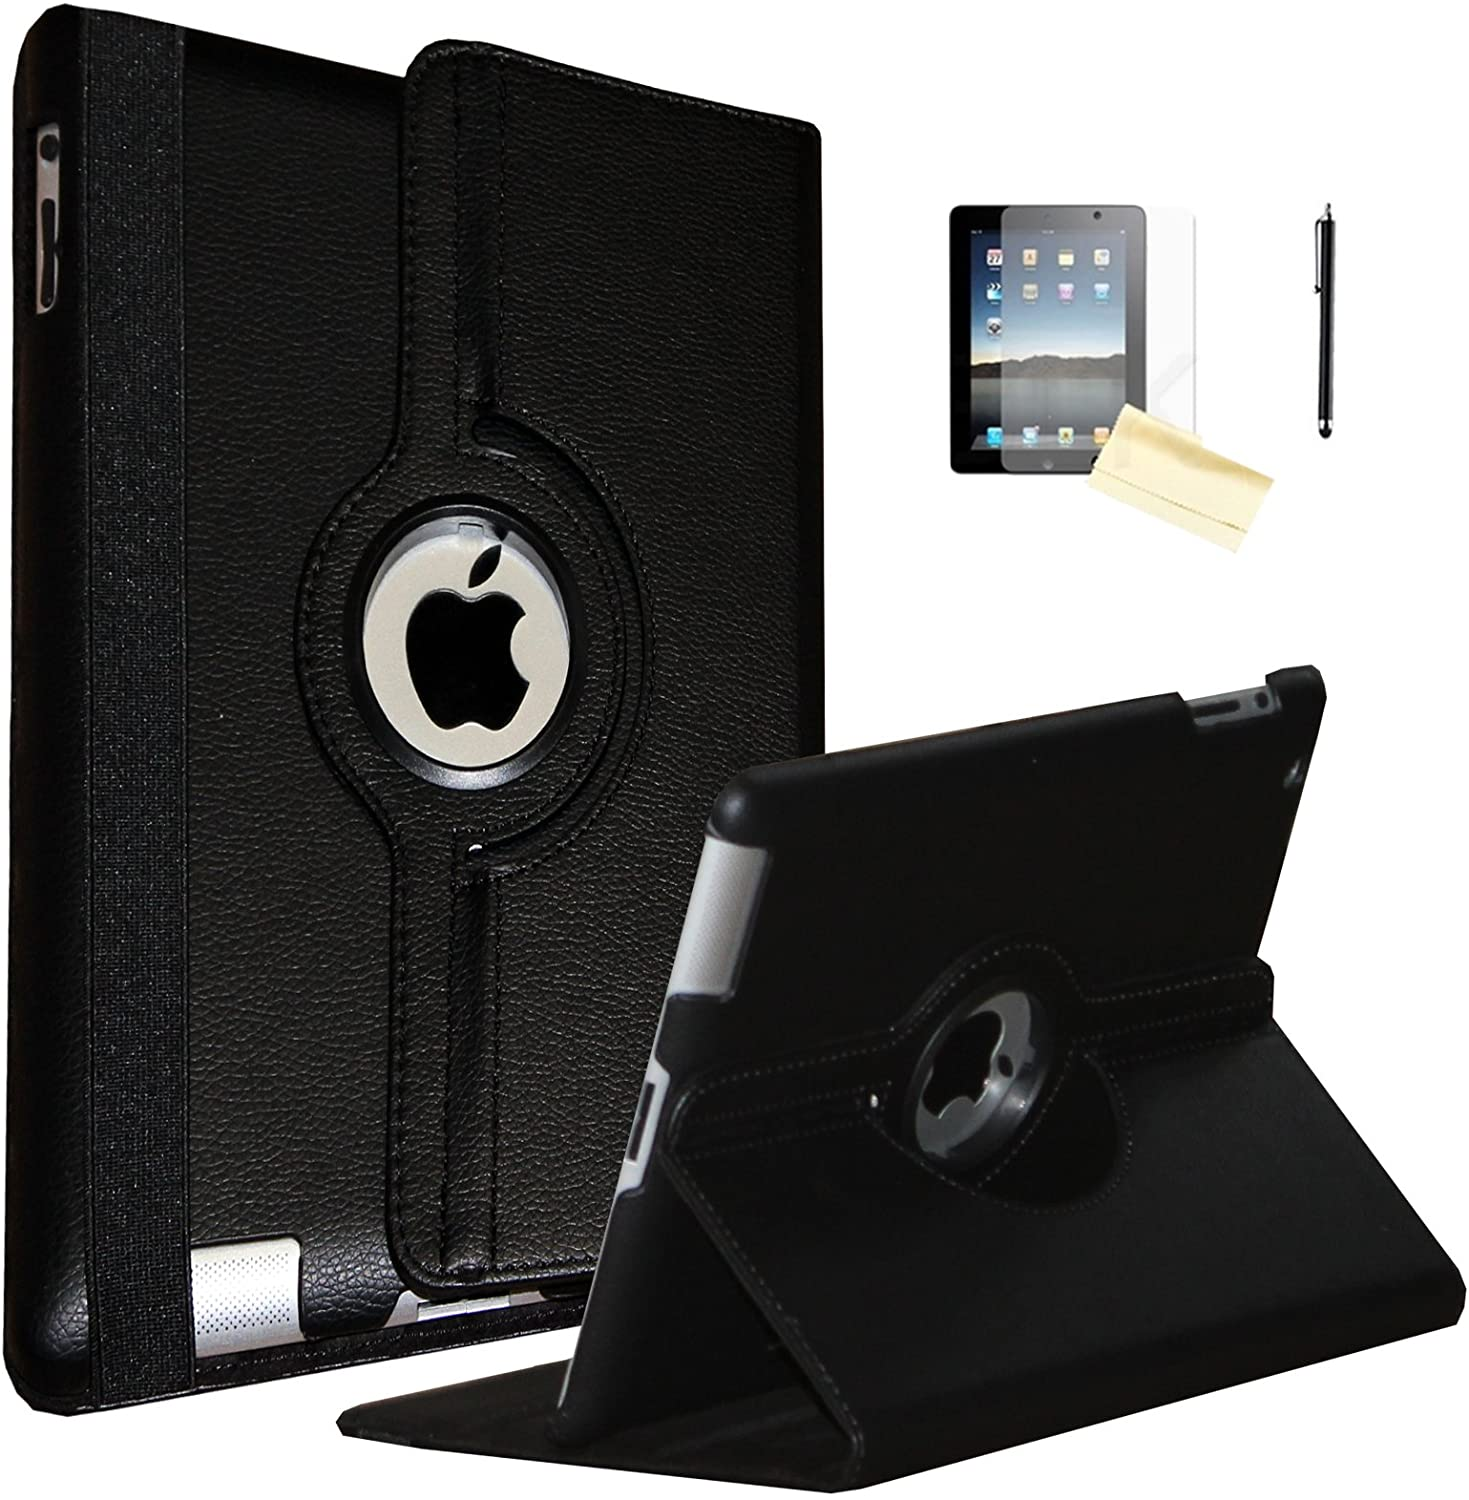 iPad 2 Case, iPad 3 Case, iPad 4 Case, JYtrend (R) Rotating Stand Smart Case Cover Magnetic Auto Wake Up/Sleep for iPad 2/3/4 A1395 A1396 A1397 A1403 A1416 A1430 A1458 A1459  A1460 (Black)